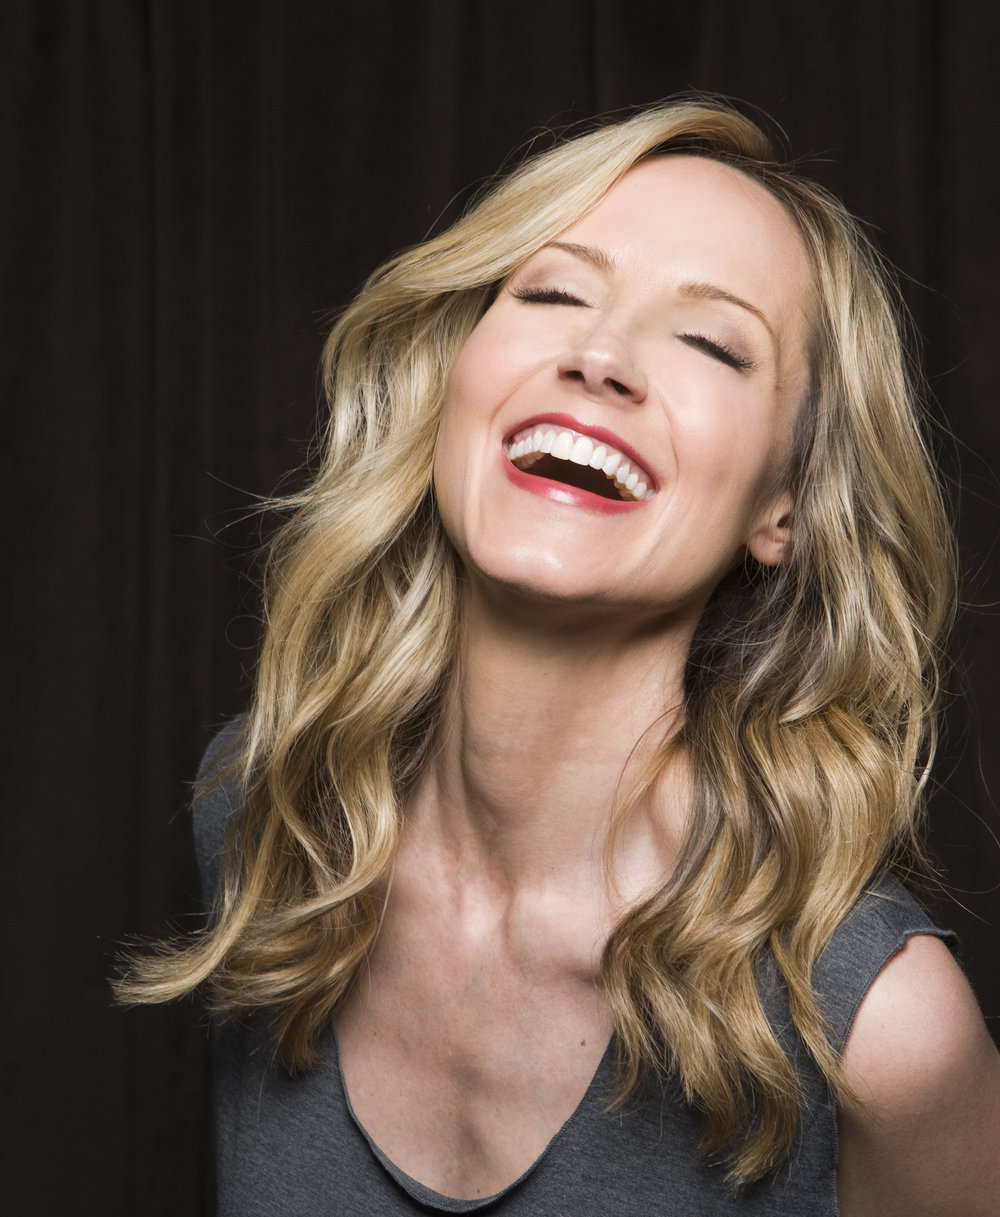 Chely Wright - Recording artist and LGBT activist